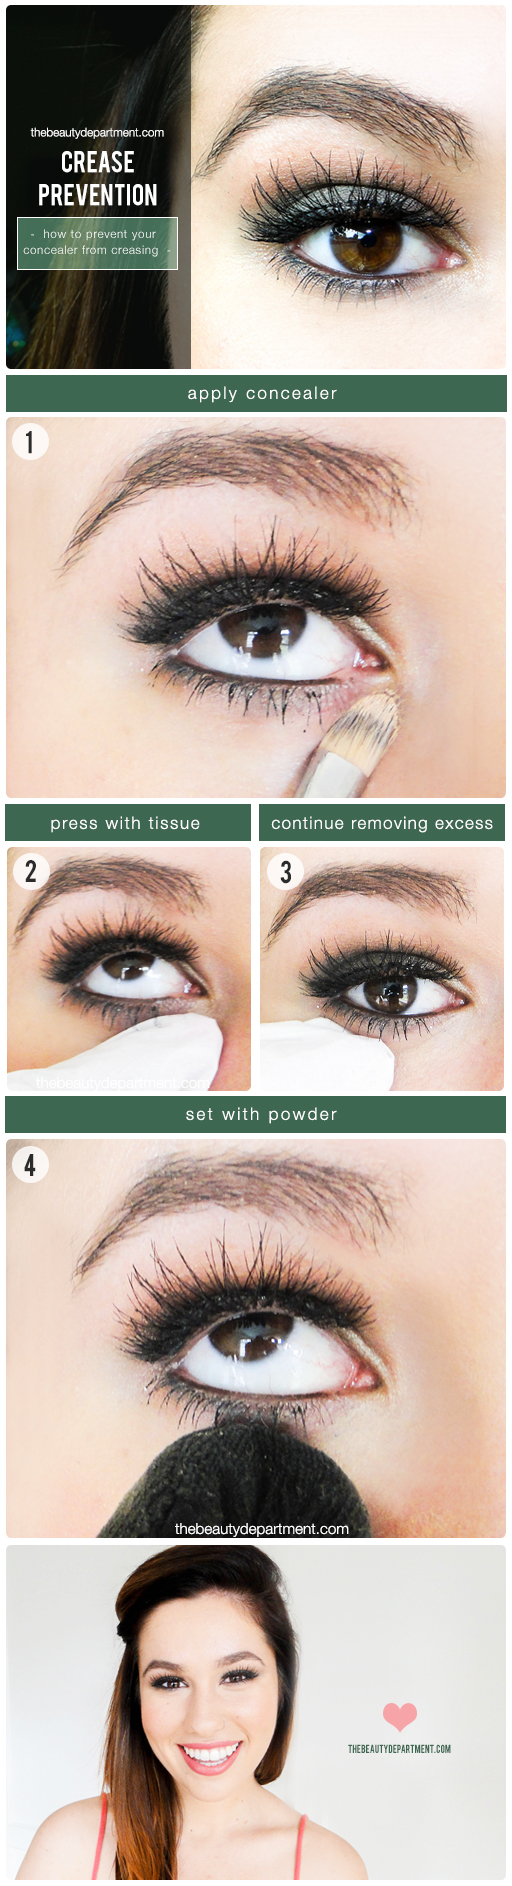 how to tell your eyebrow crease